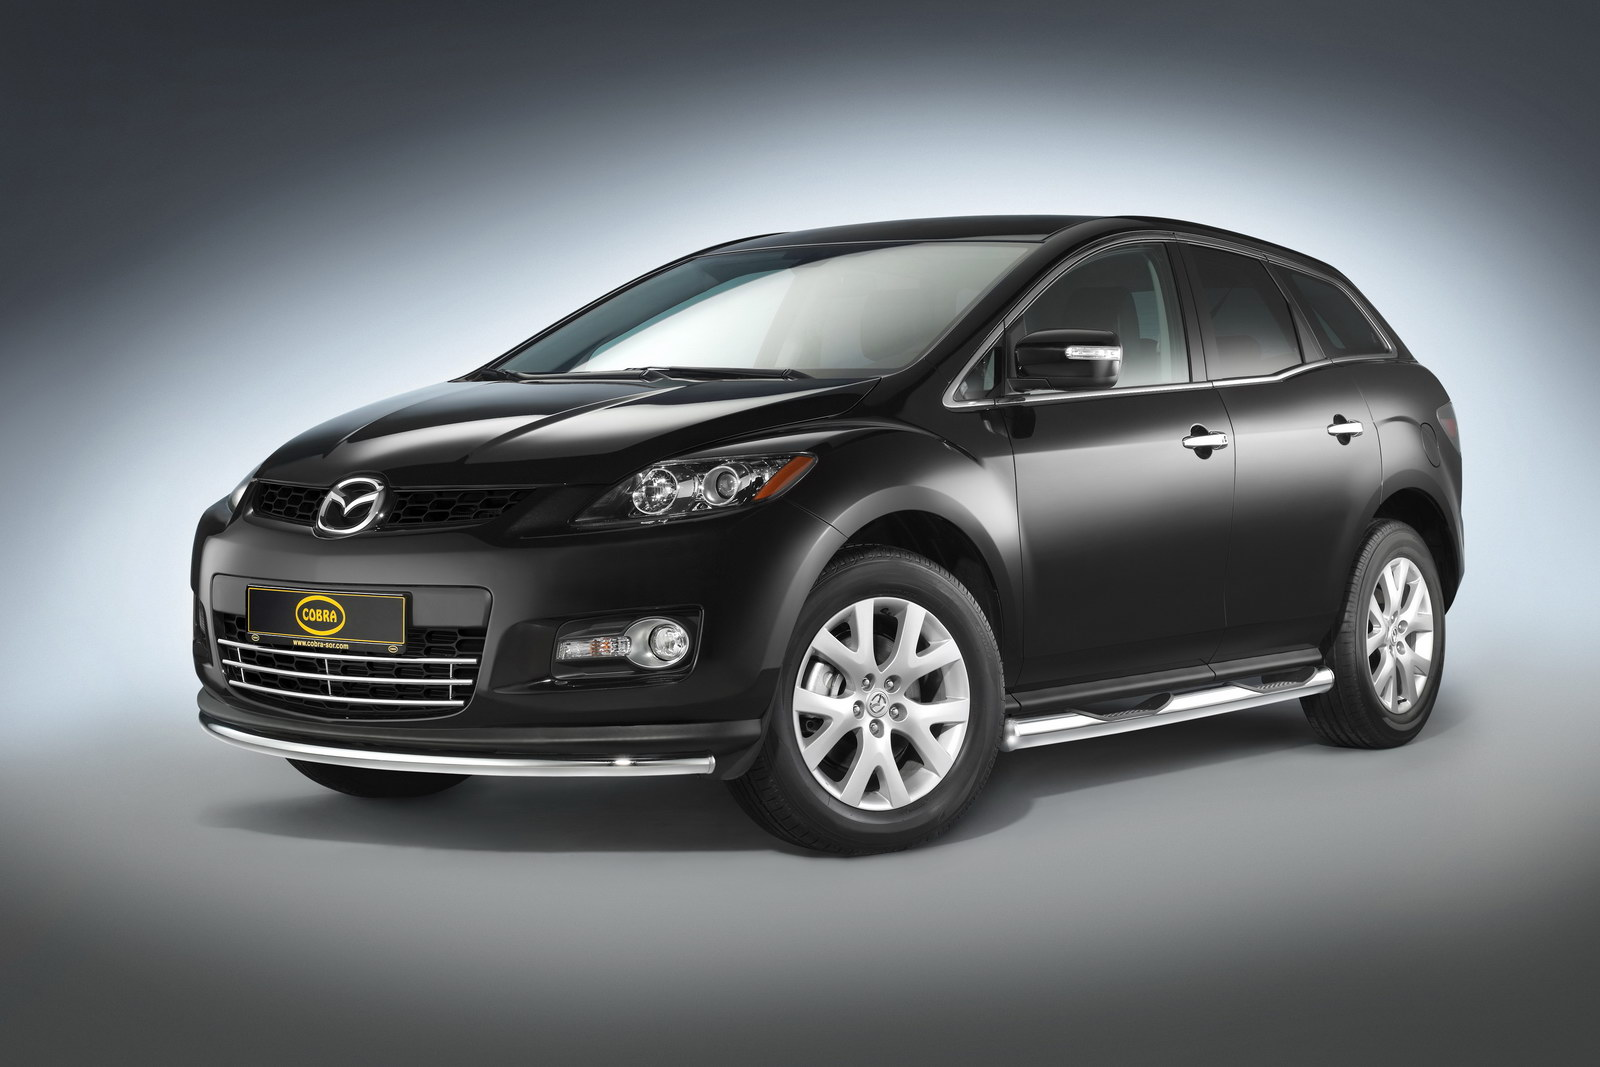 mazda cx 7 history photos on better parts ltd. Black Bedroom Furniture Sets. Home Design Ideas